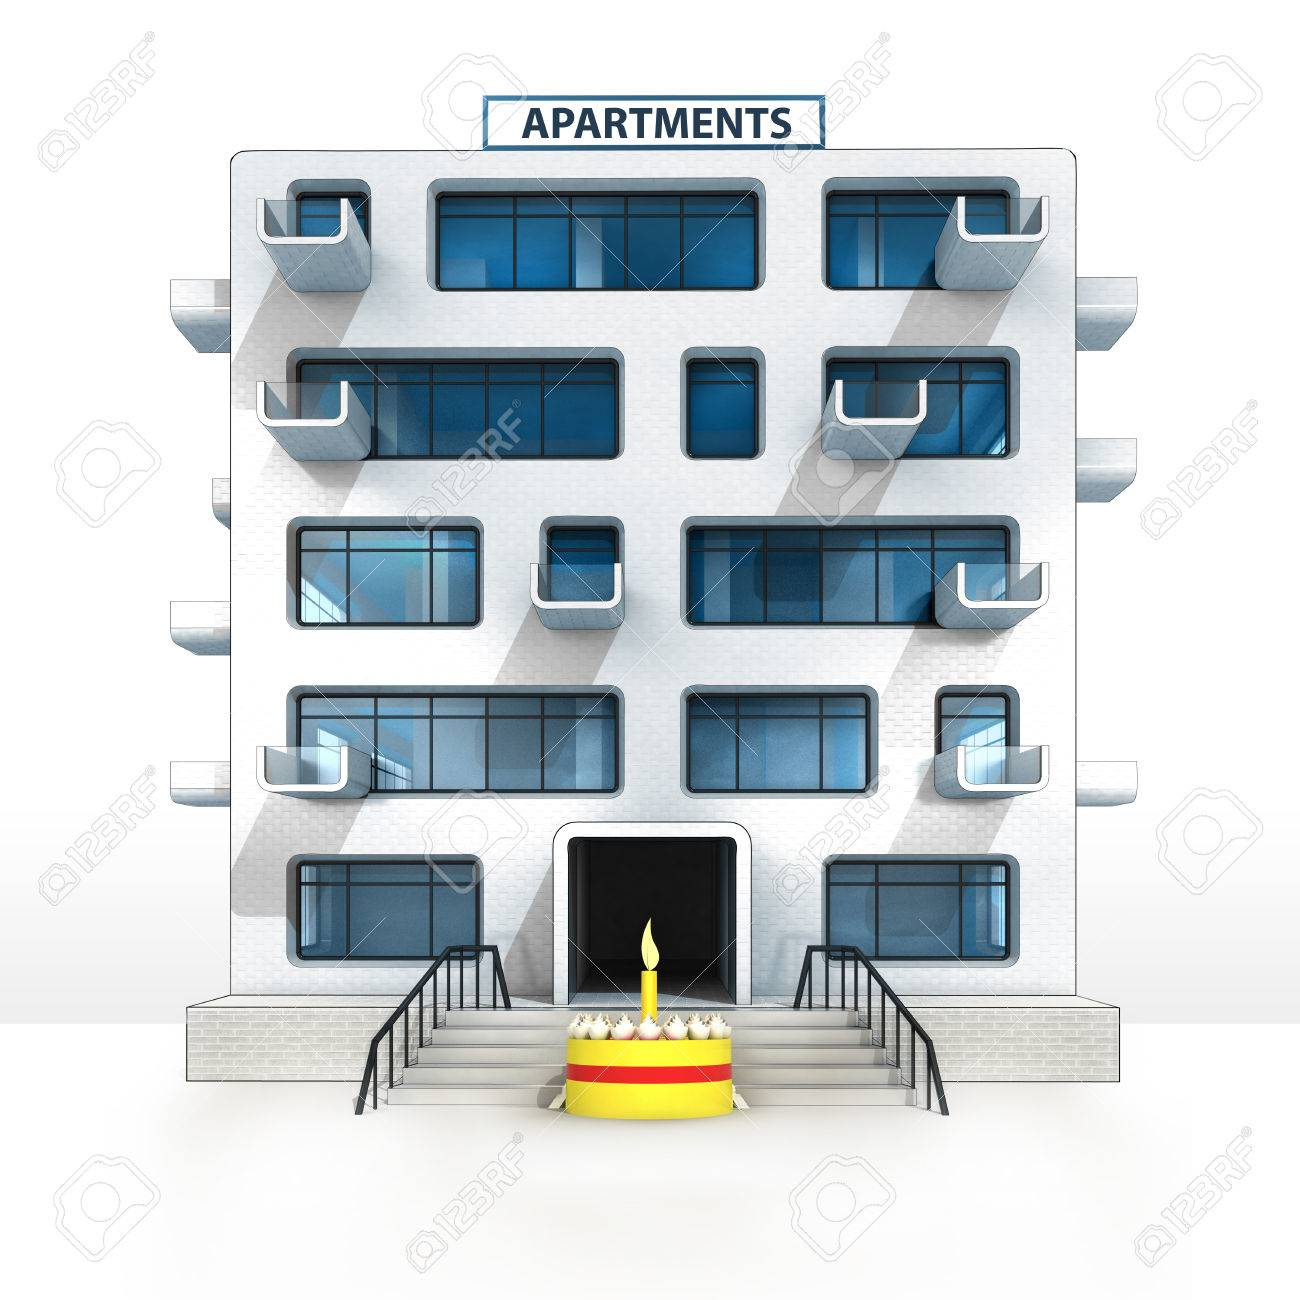 Fancy Cake In Front Of Isolated Apartment Building Illustration